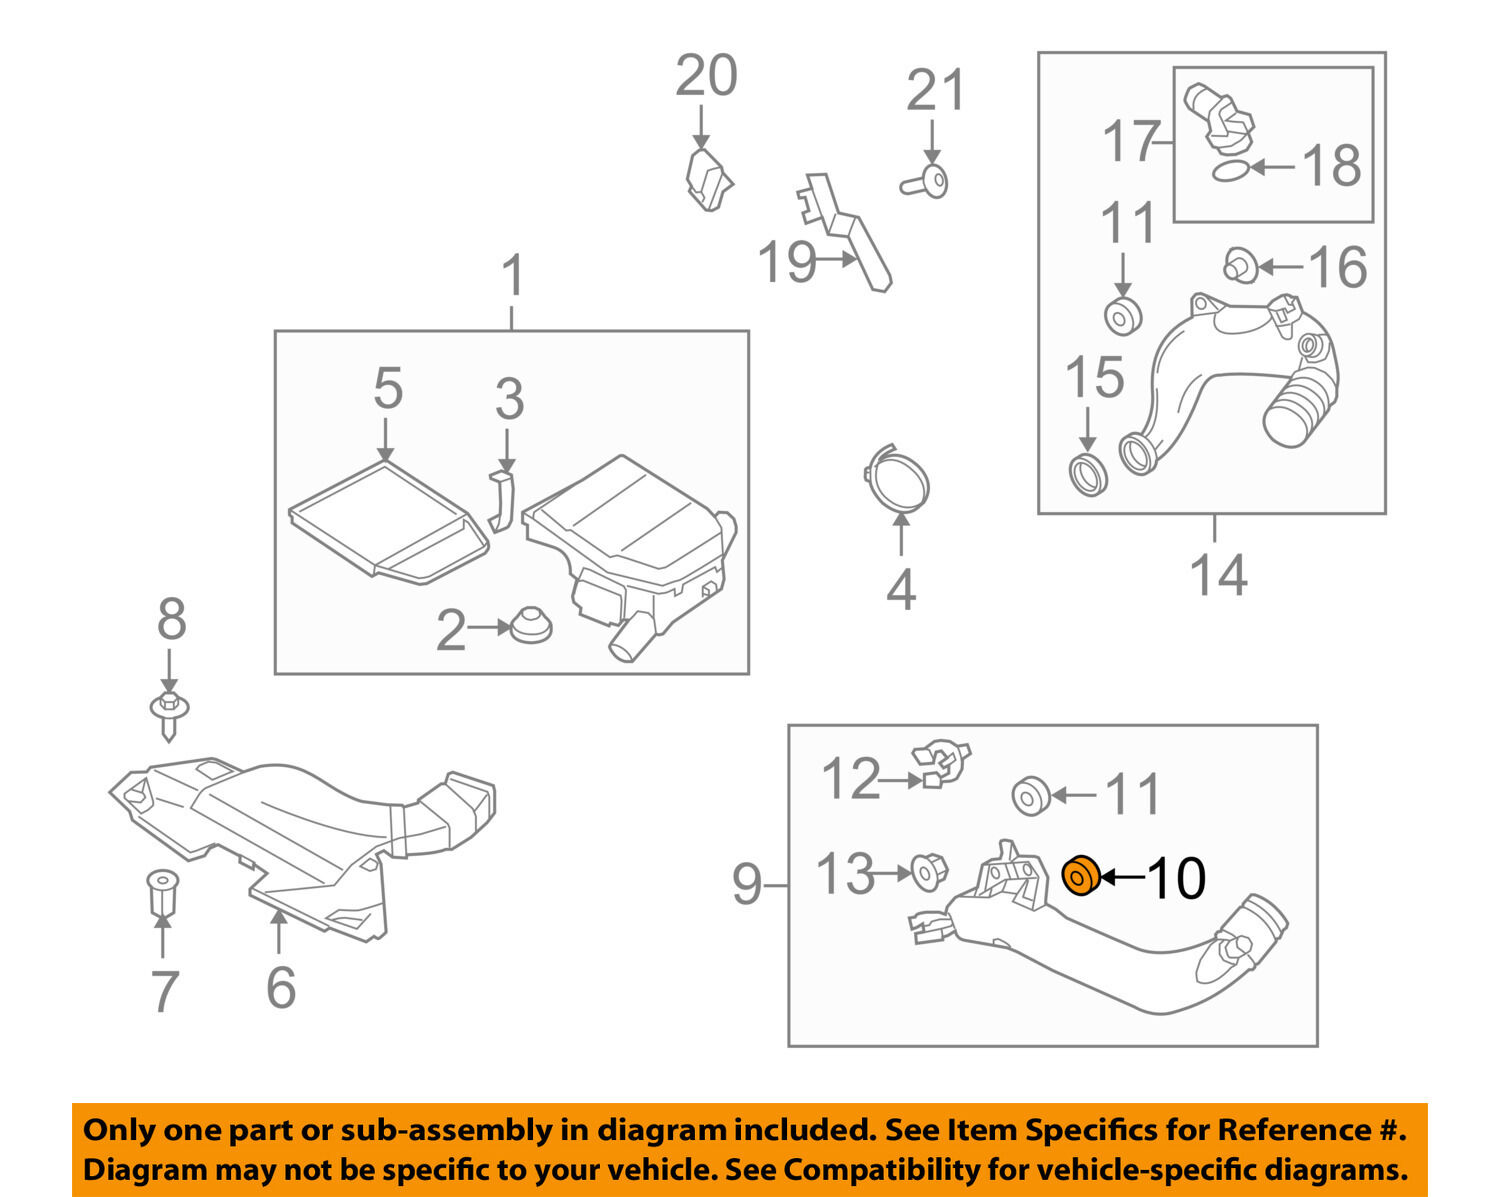 Bmw Oem 09 16 Z4 30l L6 Air Cleaner Intake Front Duct Bushing Engine Diagram 13712247398 For Sale